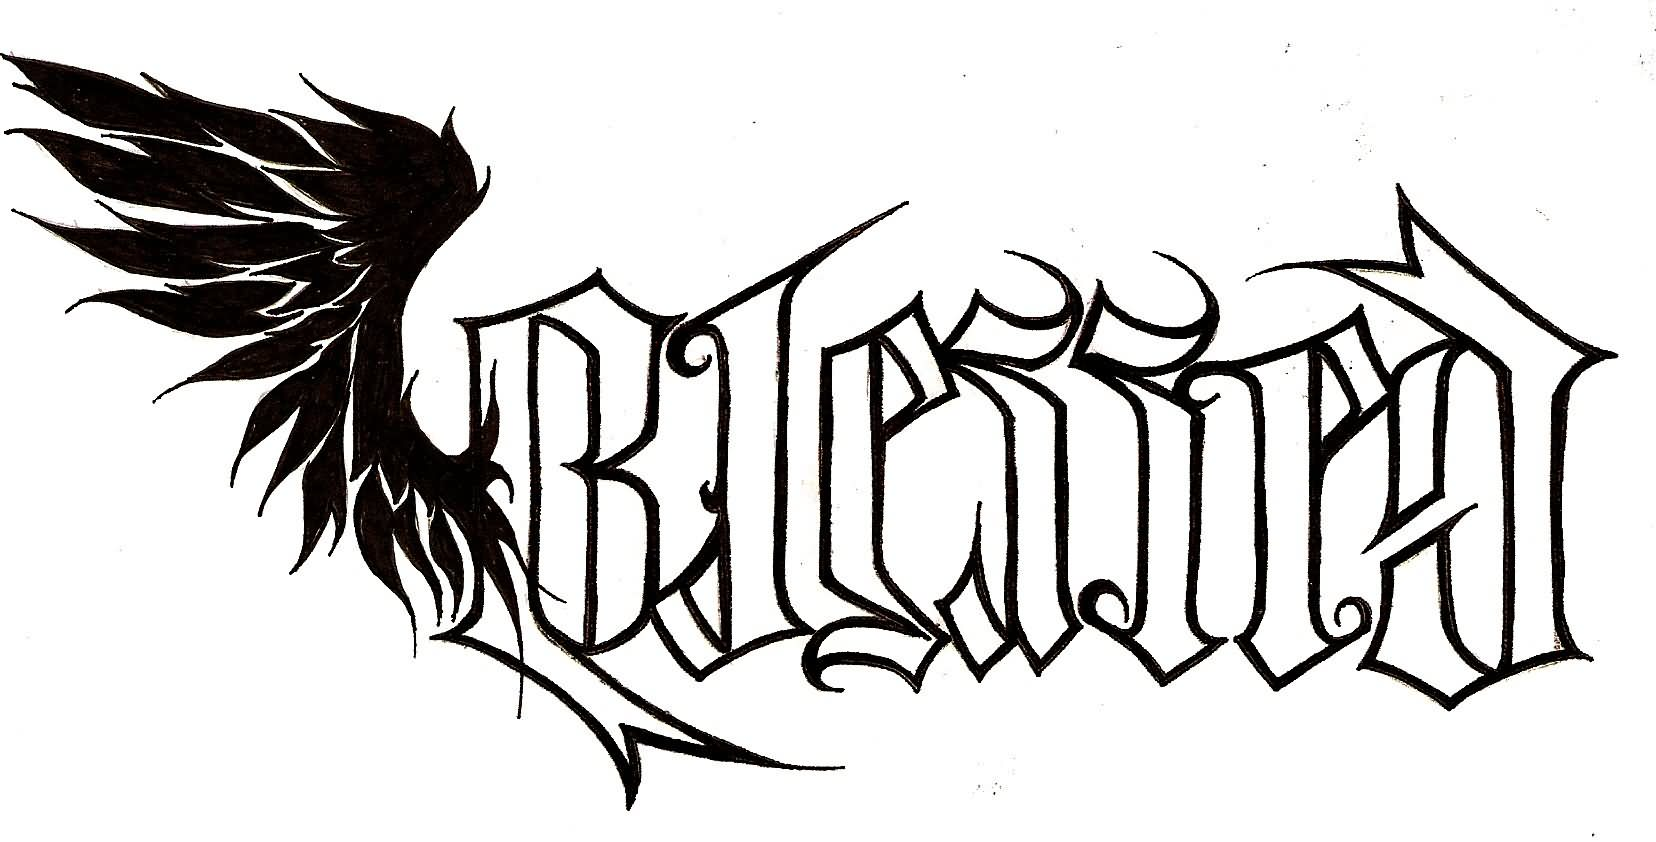 Ambigram blessed lettering with wing tattoo stemncil by for Tattoo artist stencils